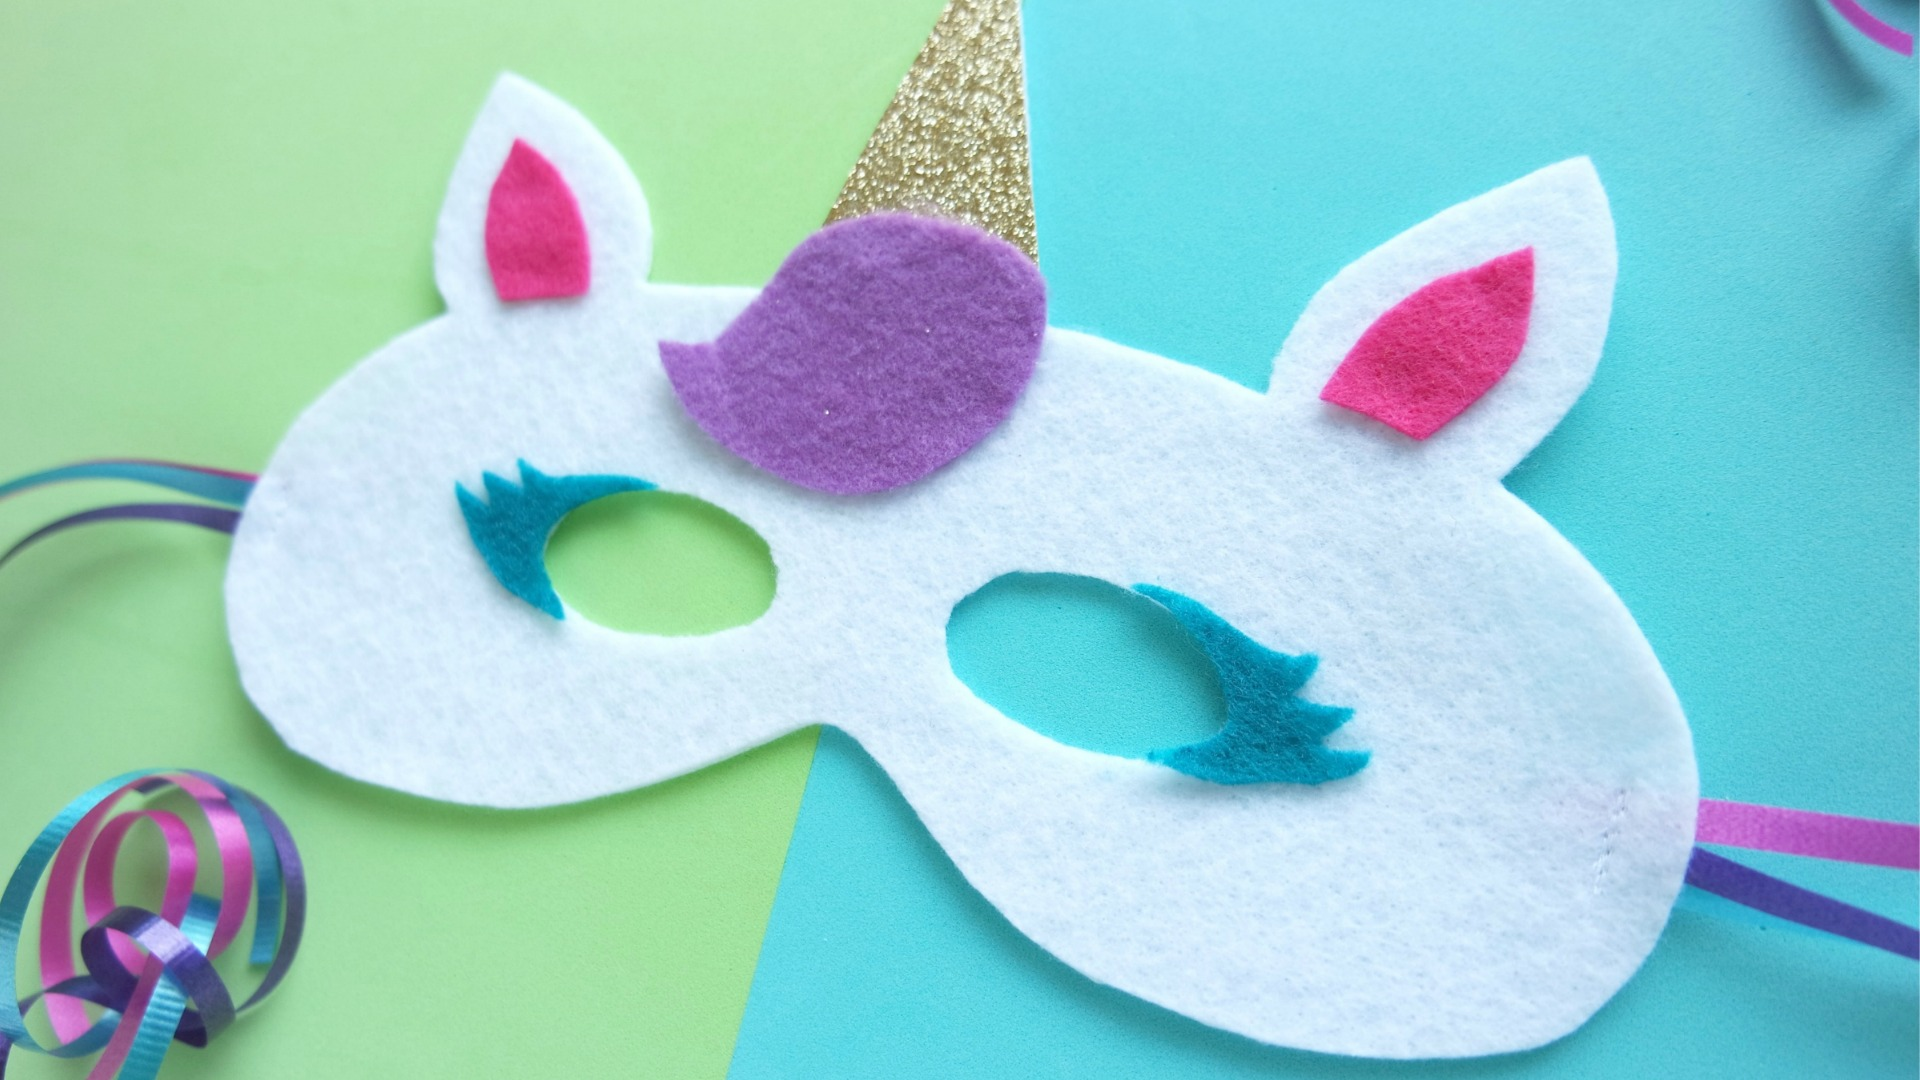 DIY Unicorn Mask Template - free pattern to make your own felt unicorn mask. Perfect for unicorn birthday party favors too! // unicorn party favor, felt unicorn mask, #unicornmask #feltmask #toddlerbirthday #unicornparty #unicornbirthday #unicorncostume